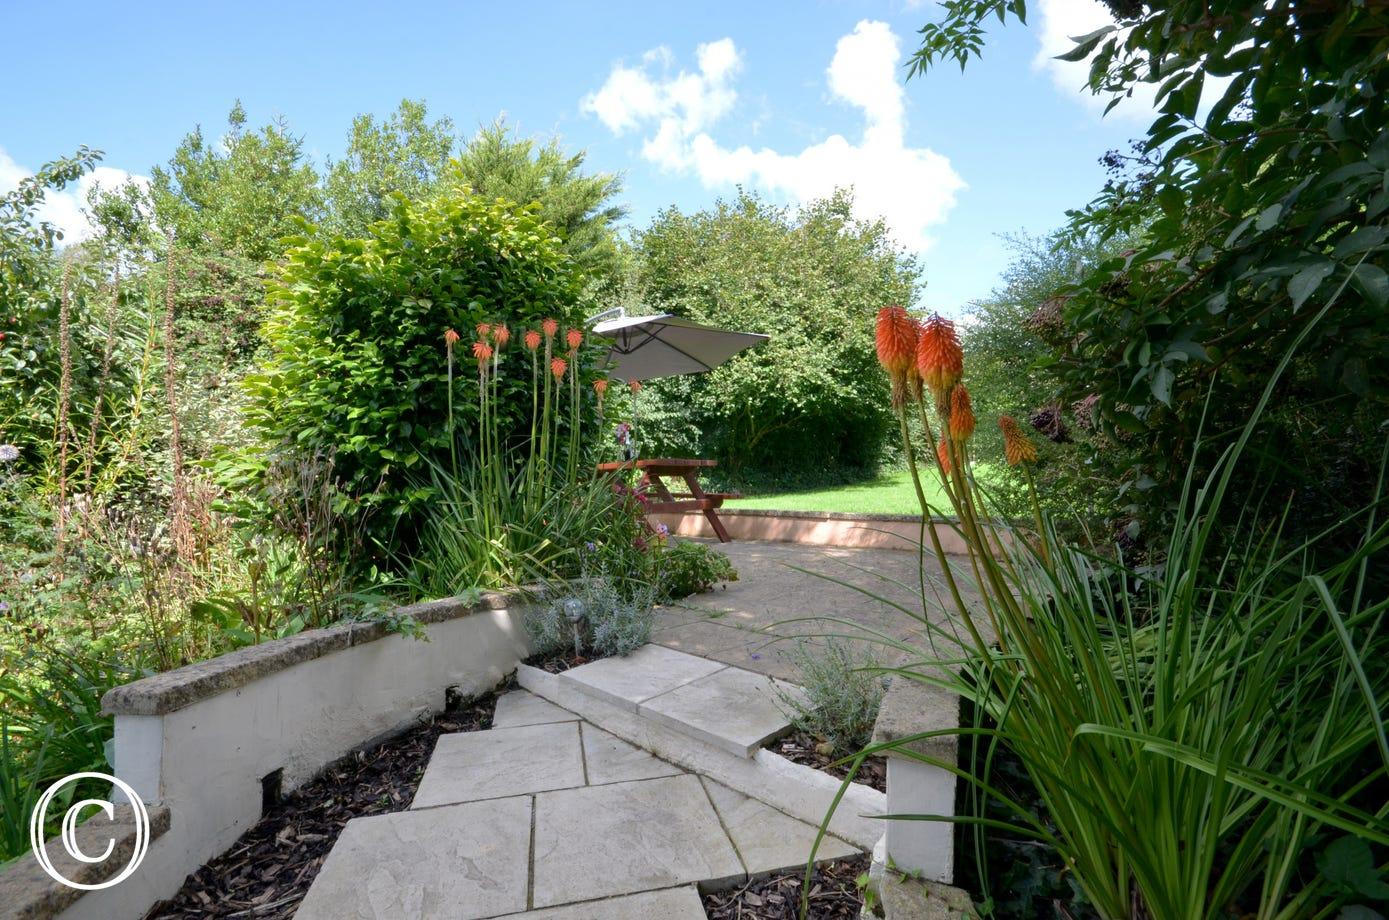 Steps lead up to the large enclosed garden with patio area, picnic bench and a good sized lawned area, ideal for children's play